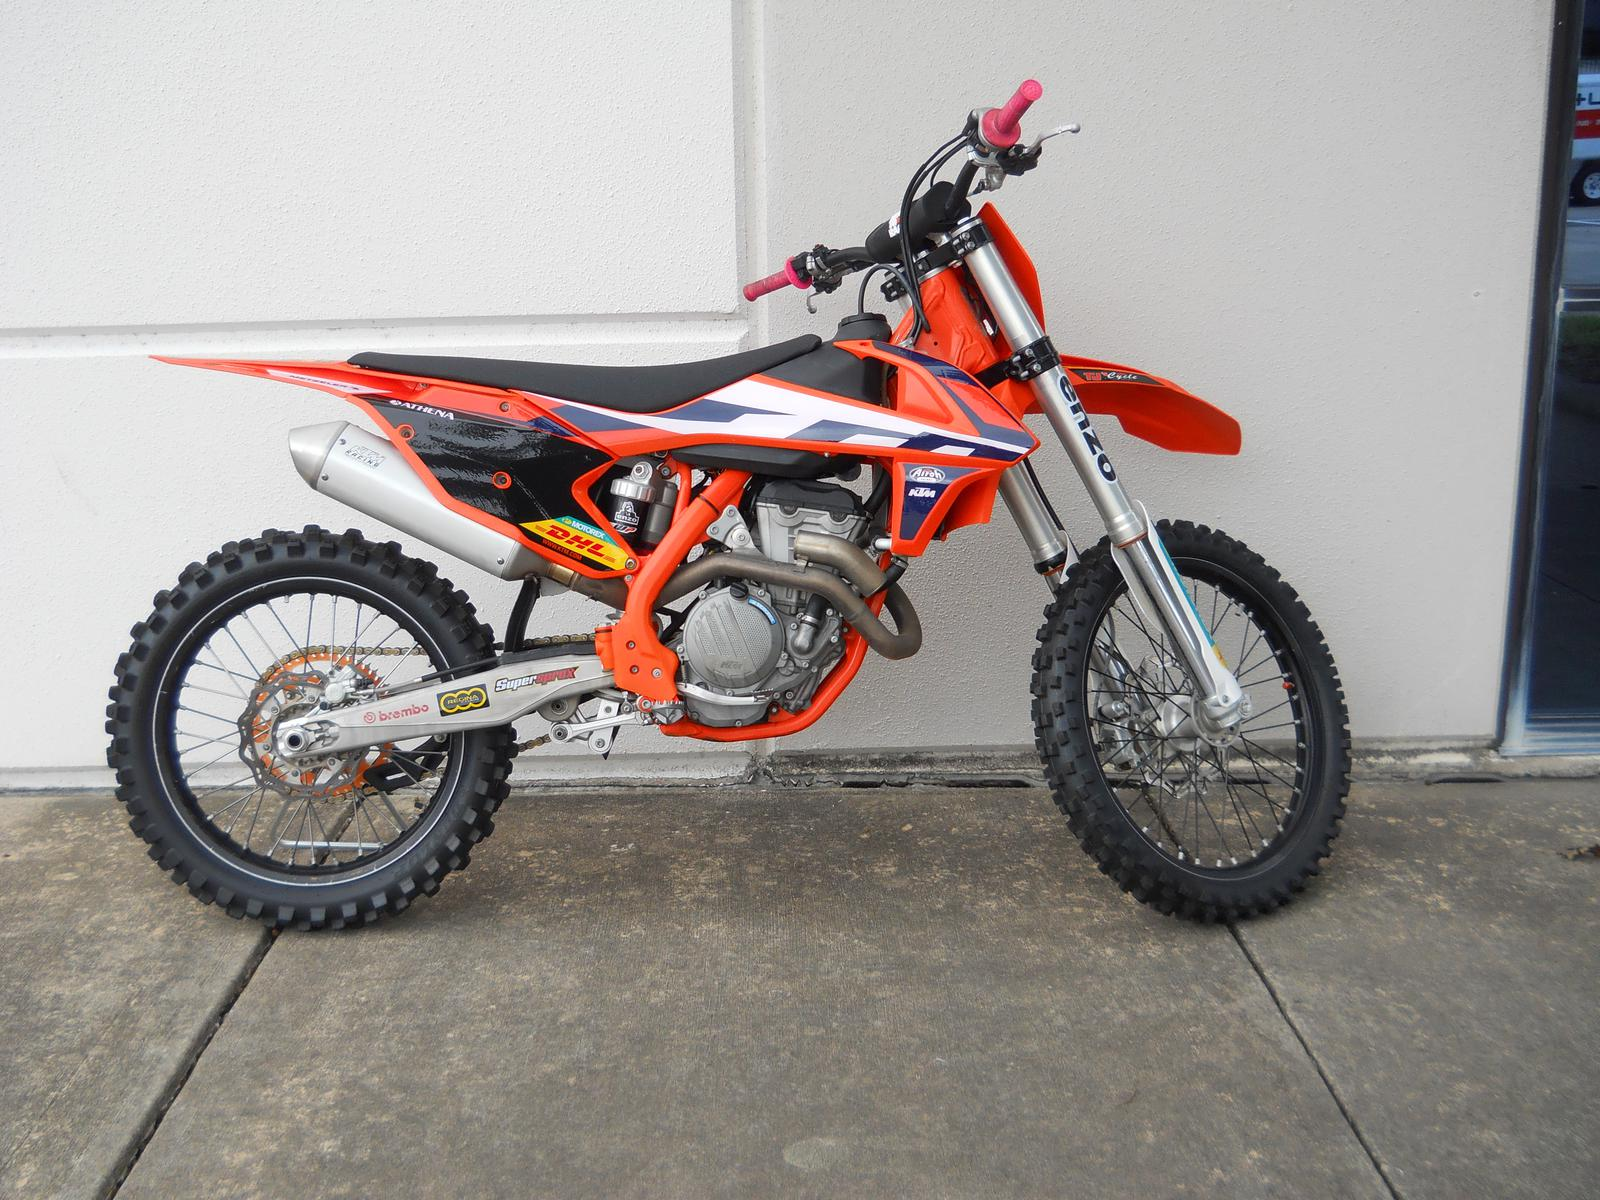 2018 KTM 350 SX-F for sale in Austin, TX | TJ's Cycle Sales